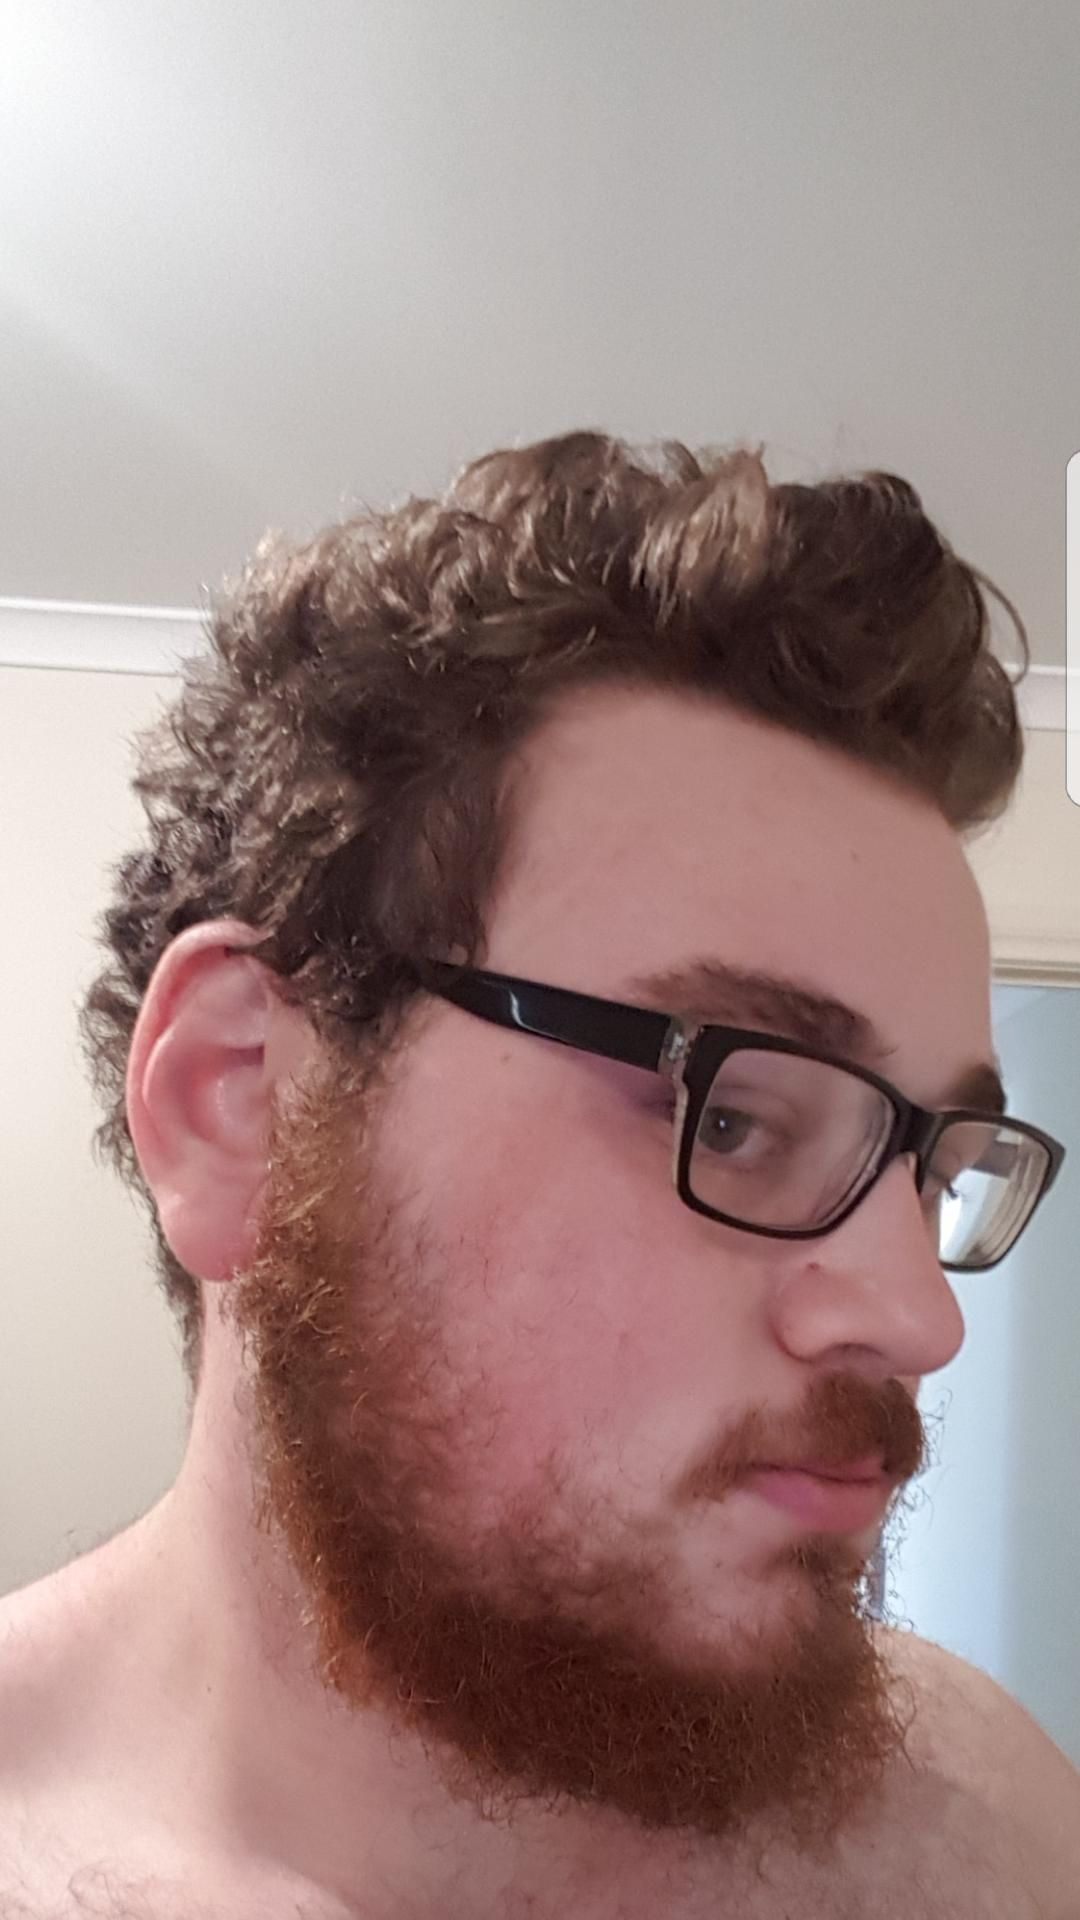 Just mens haircuts just wondering what haircut might suit me any advice is welcome